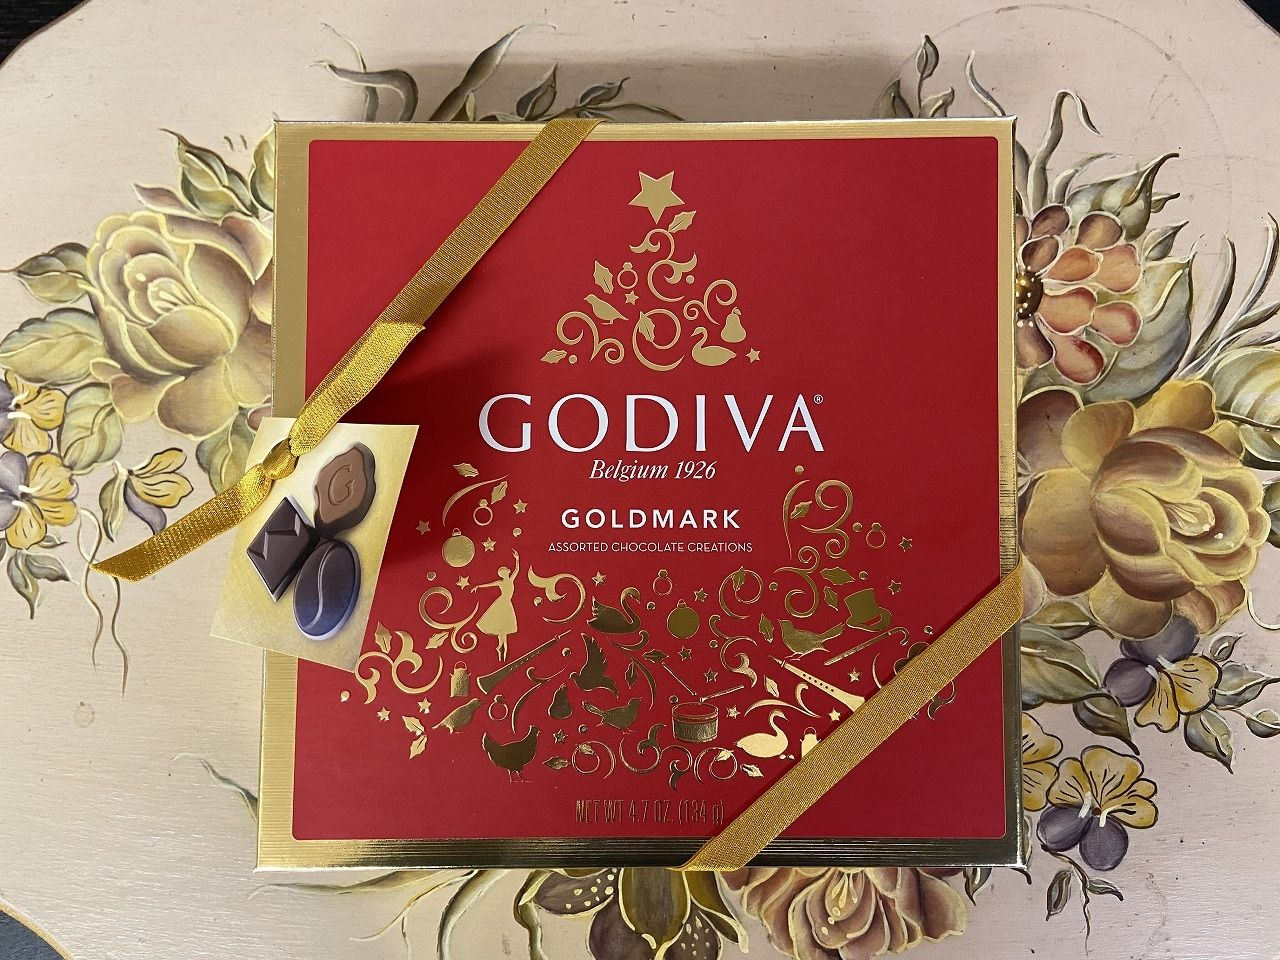 GOIVA GOLDMARK  ASSORTED CHOCOLATE CREATIONS ゴディバのチョコレート